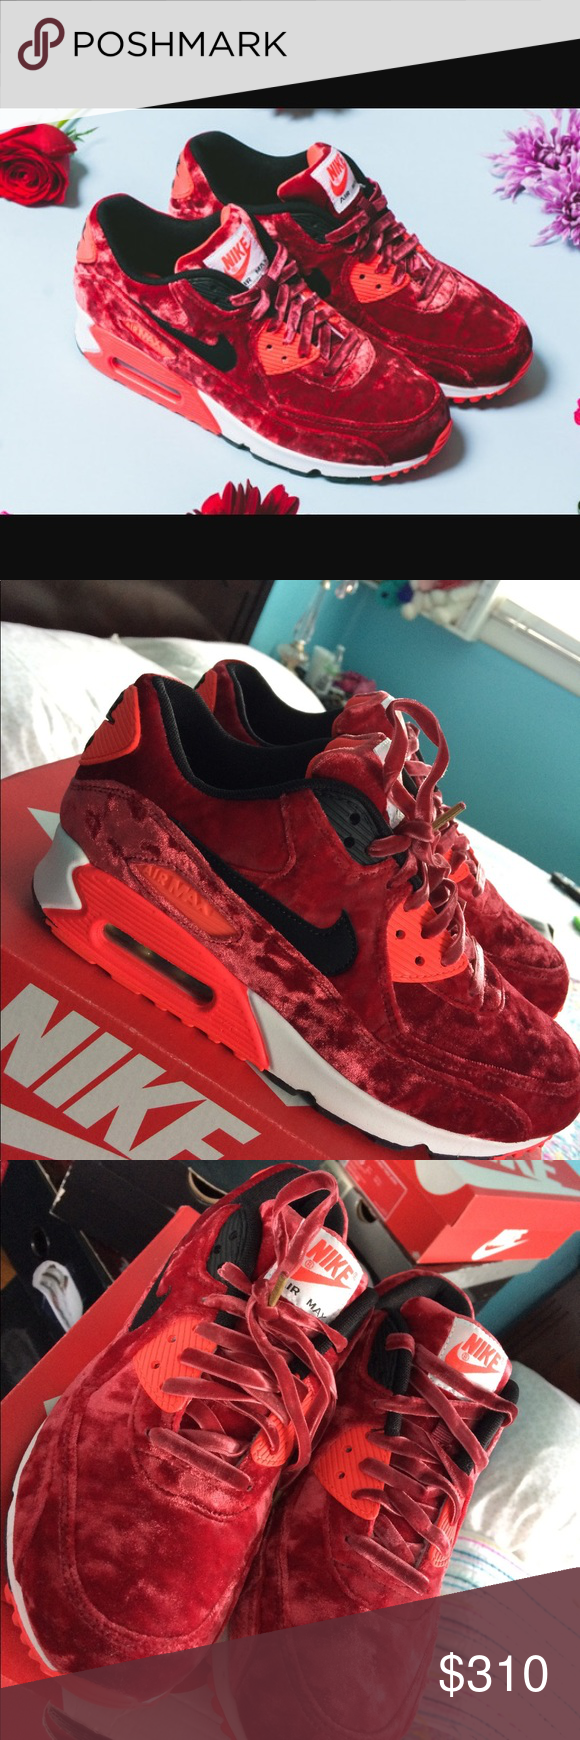 Nike Air Max 90 Red Velvet 25th Anniversary Infrared SOLD OUT